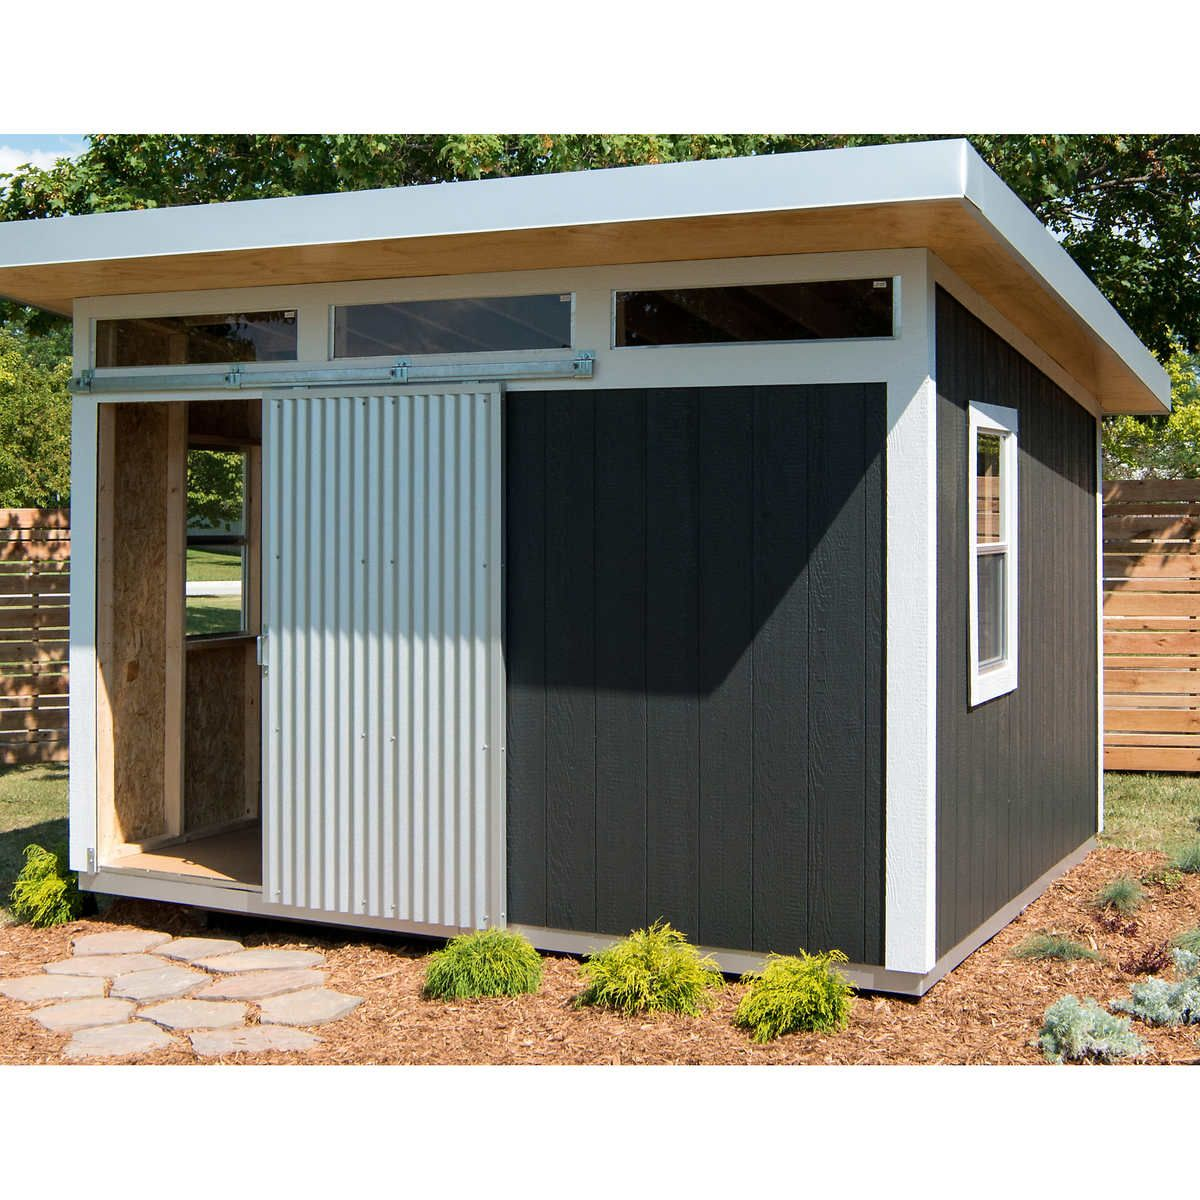 Cute Midcentury Modern Style Shed On Sale Now Studio Shed Building A Shed Outdoor Storage Sheds